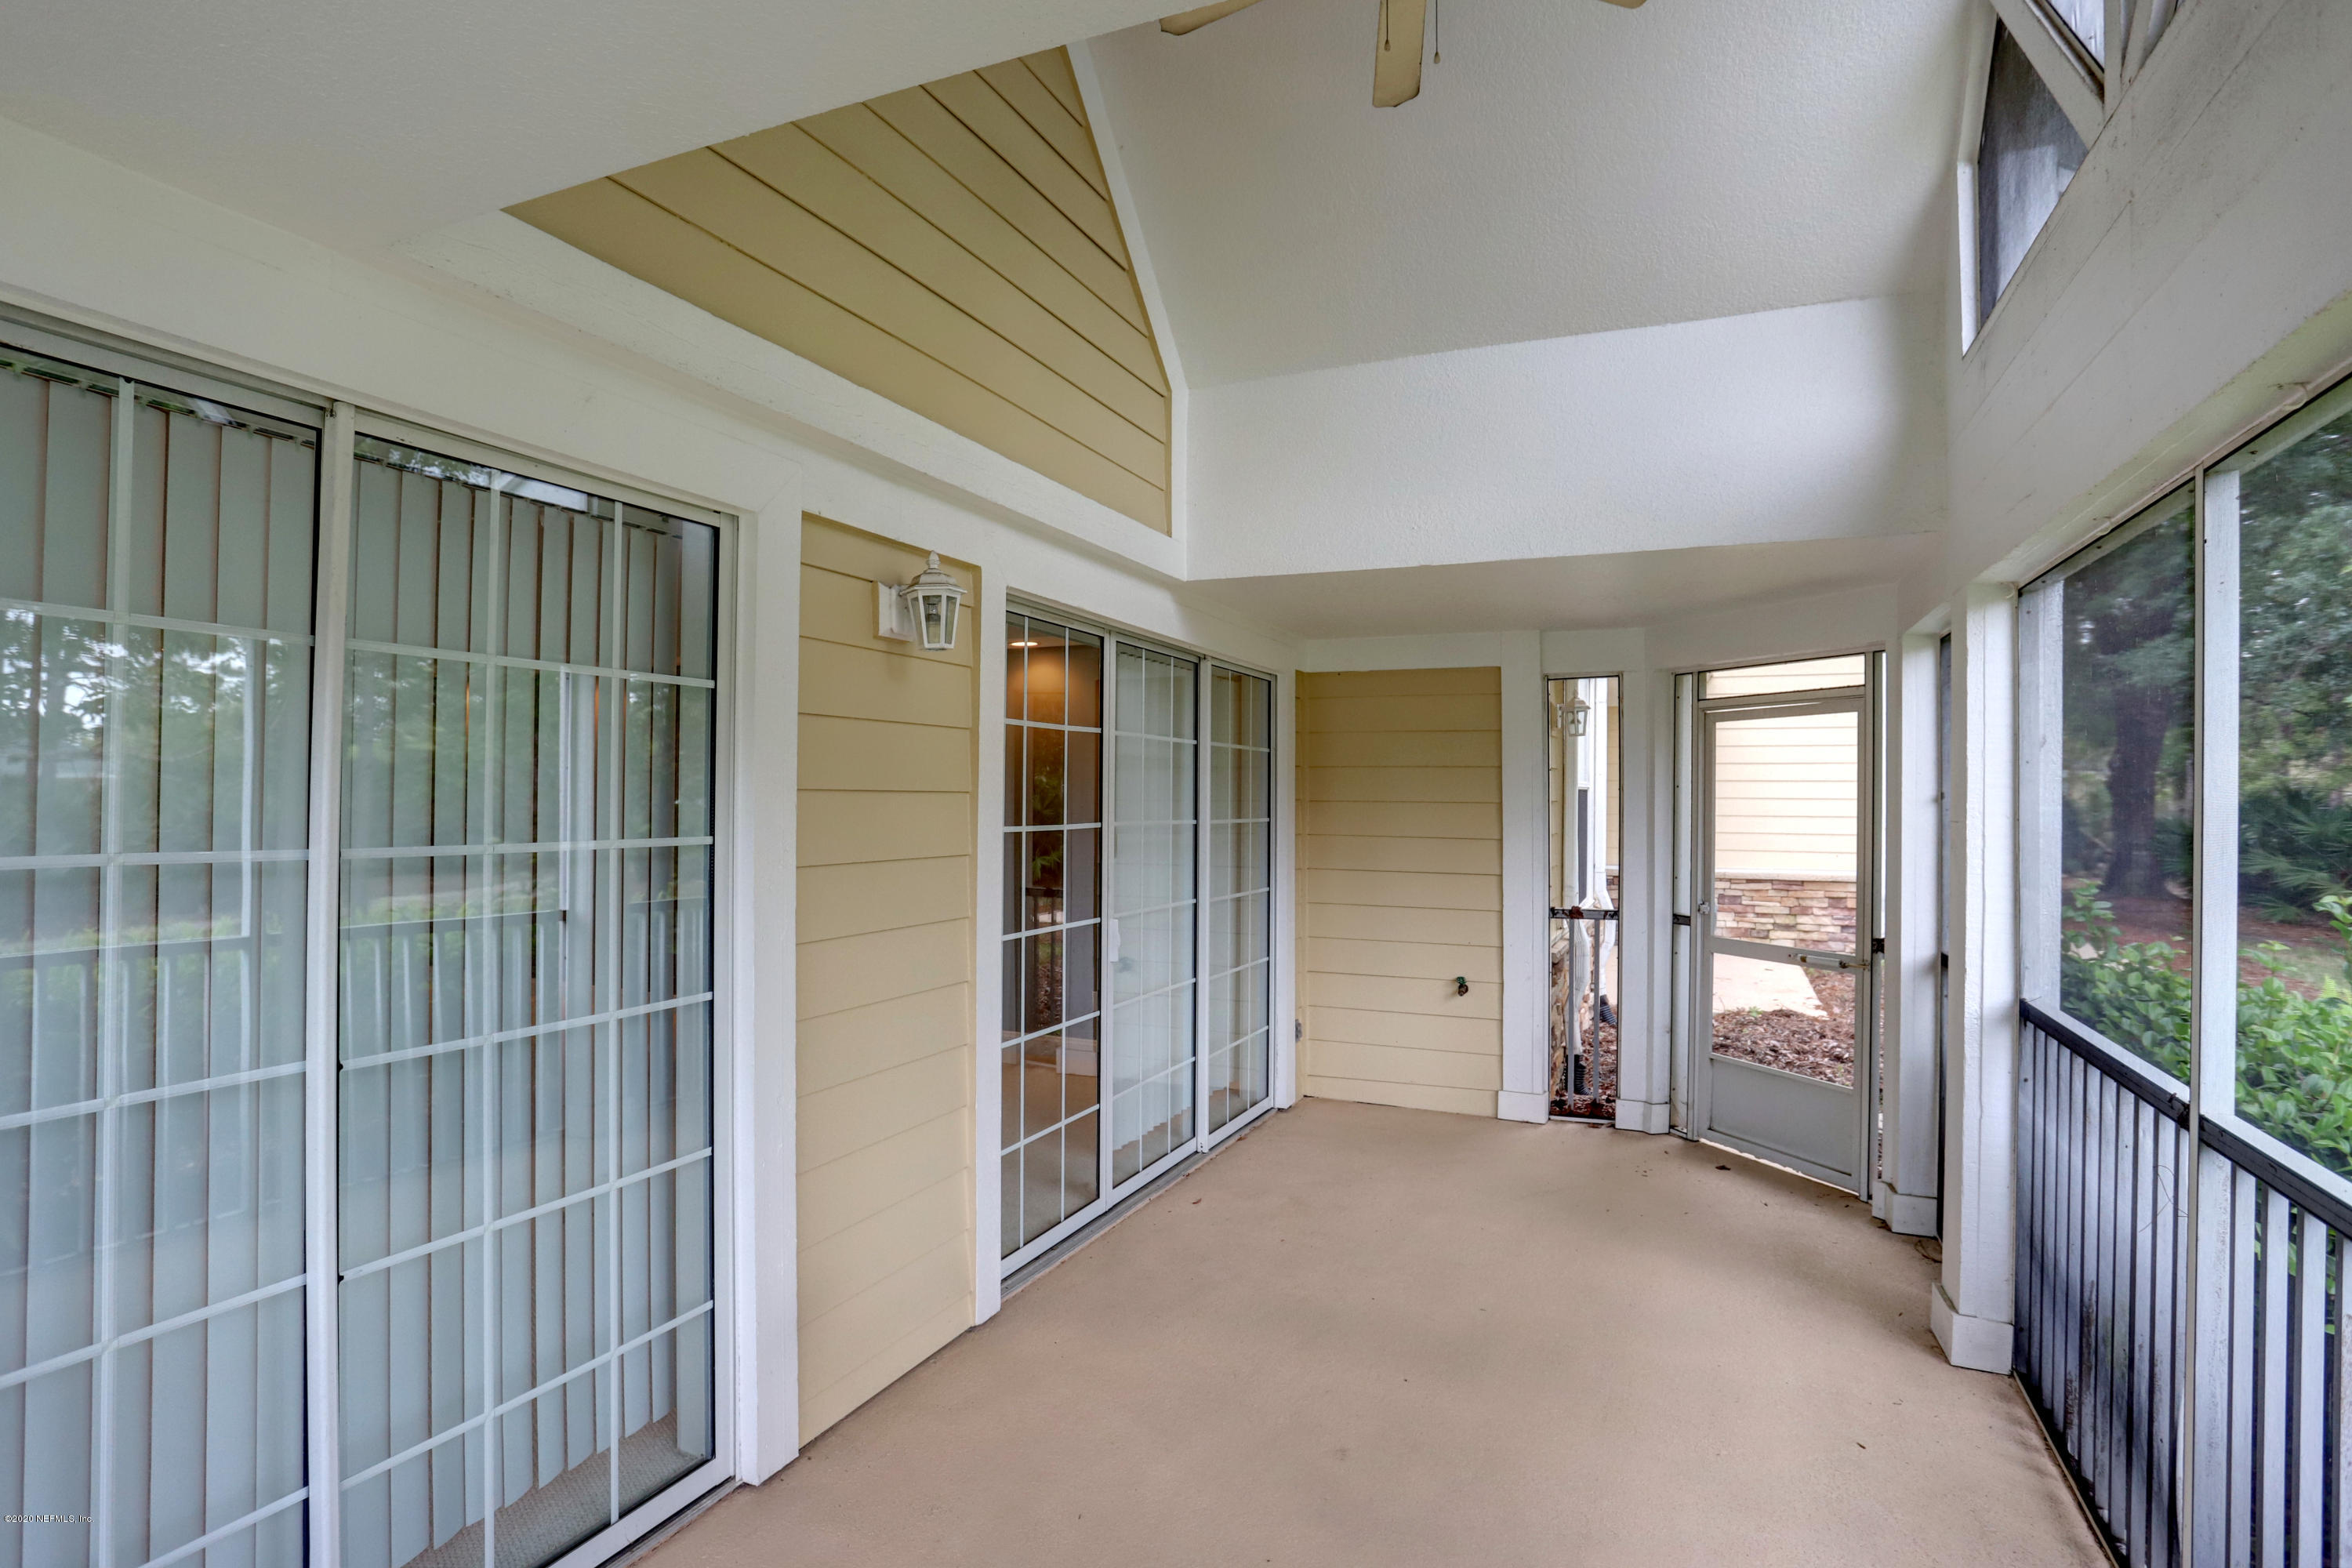 330 SHORE, ST AUGUSTINE, FLORIDA 32092, 4 Bedrooms Bedrooms, ,4 BathroomsBathrooms,Residential,For sale,SHORE,1048512